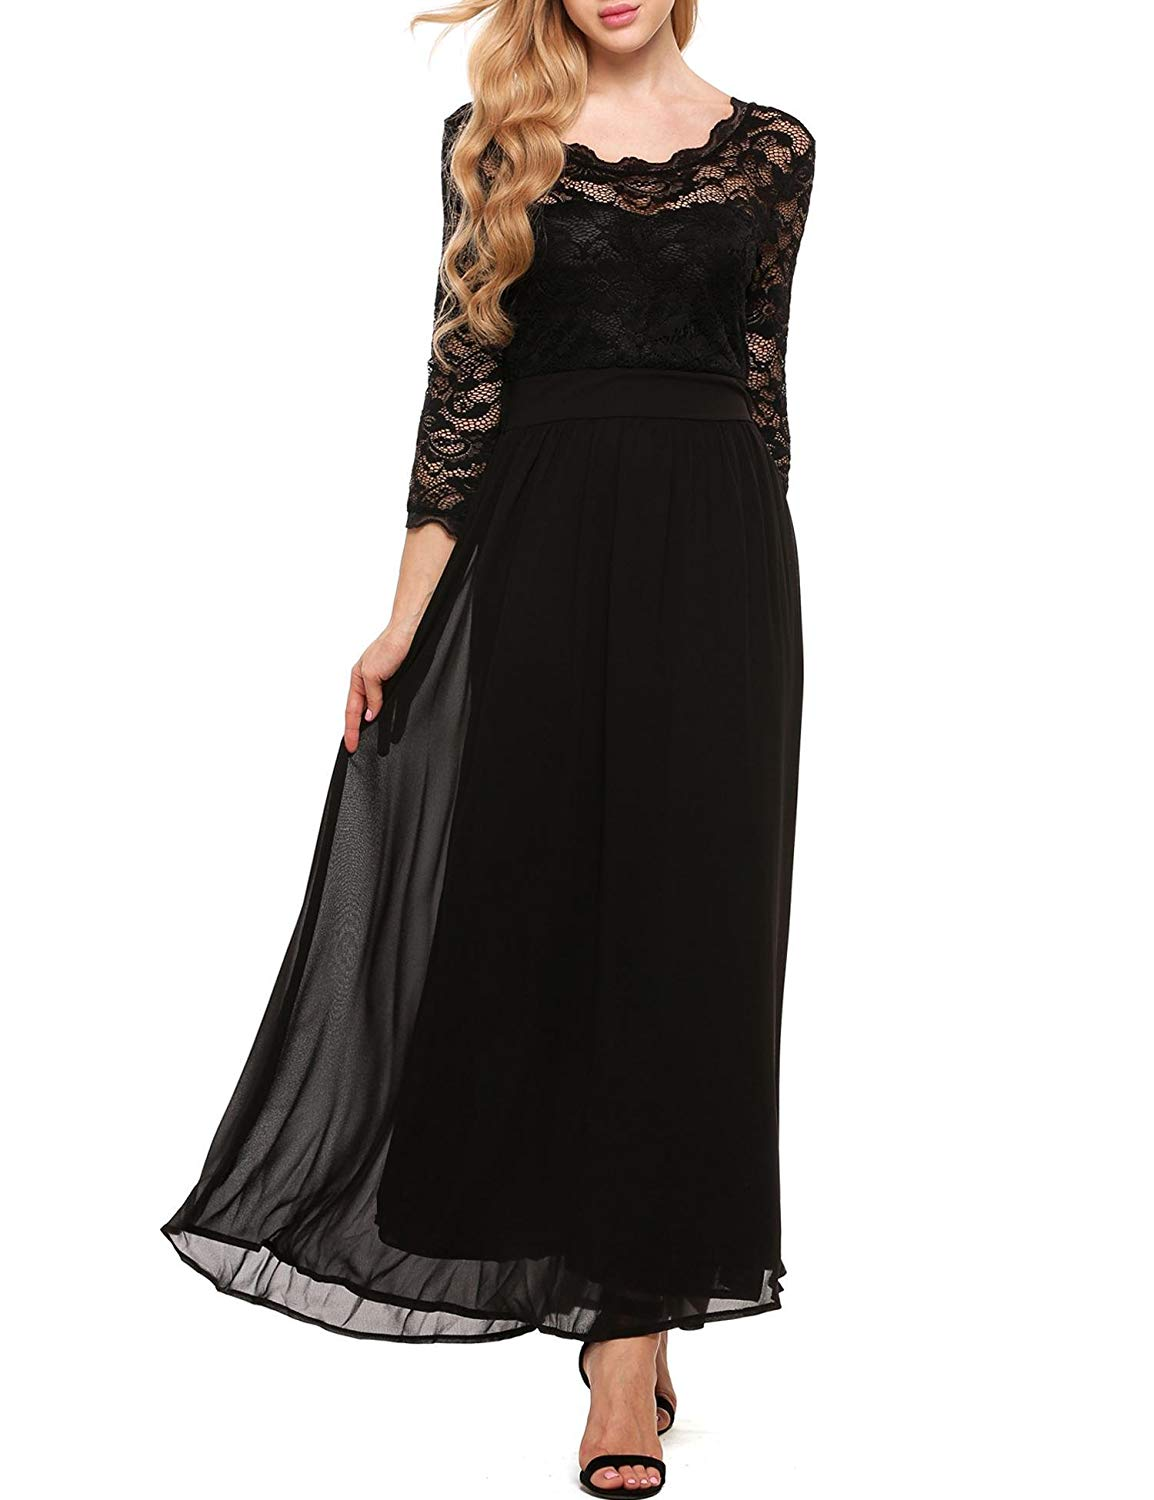 da5798b33c1c Get Quotations · Meharbour Blue Lace Maxi Dress Long Sleeve Floral Lace  Maxi Long Dresses for Women Ladies Black